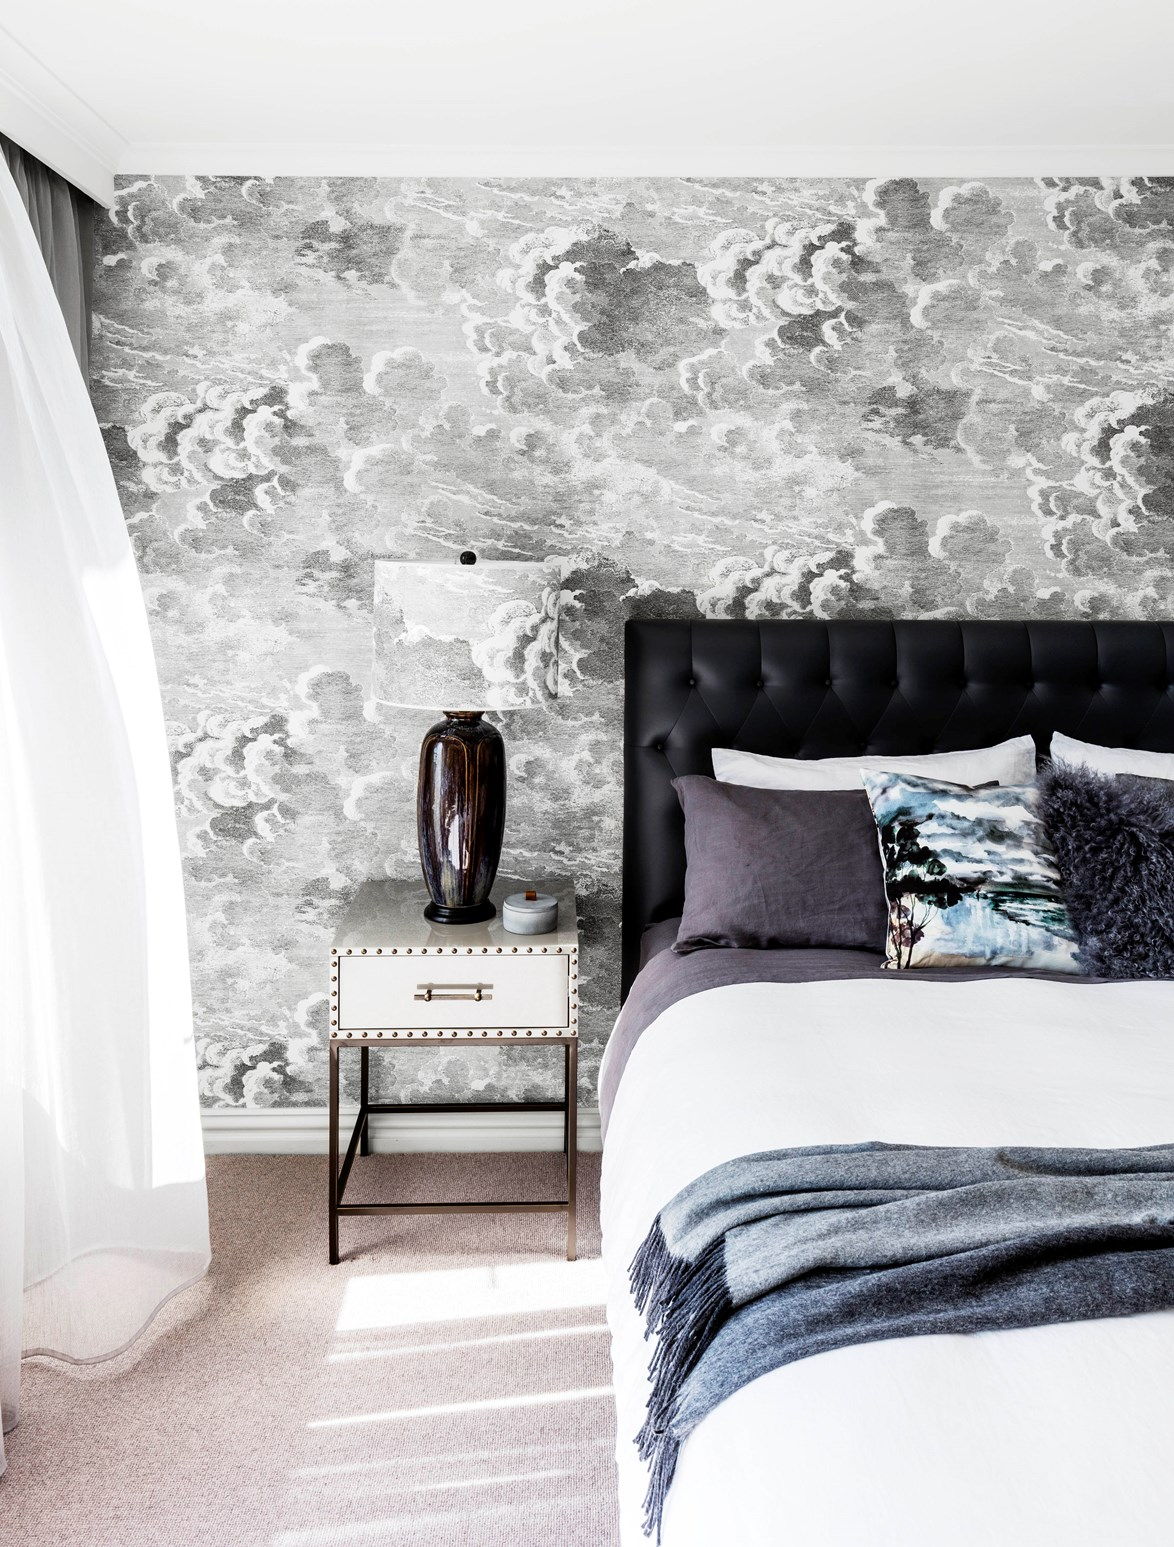 Statement wallpaper will add a designer touch to any room in your home. *Photo:* Felix Forest